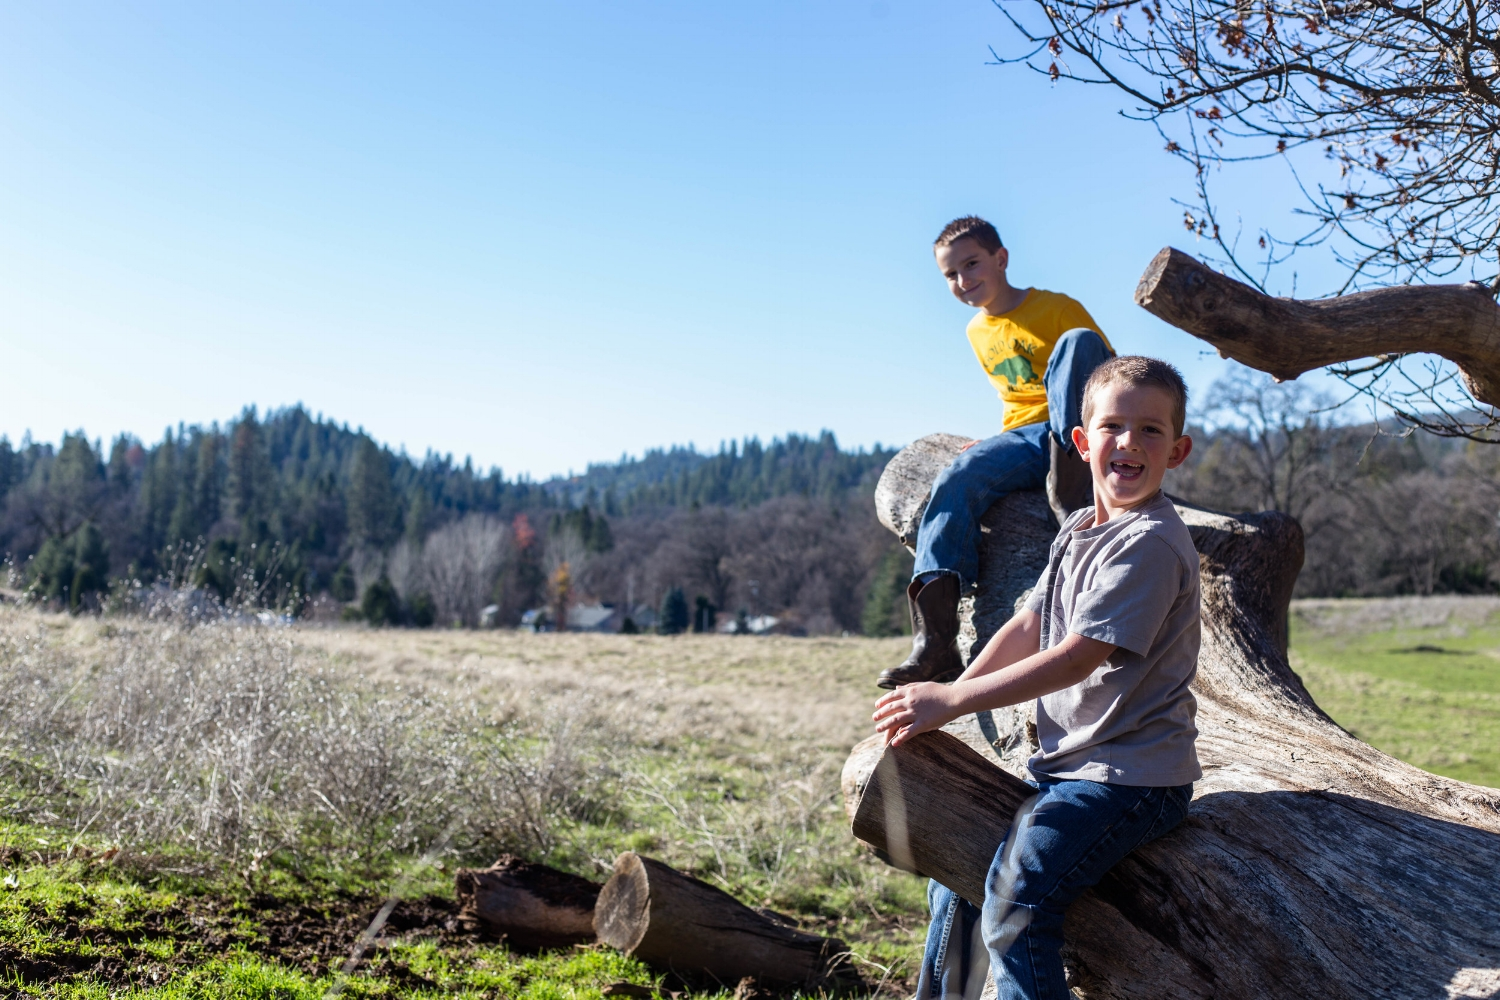 Two boys sitting on a fallen tree log while playing in the pasture